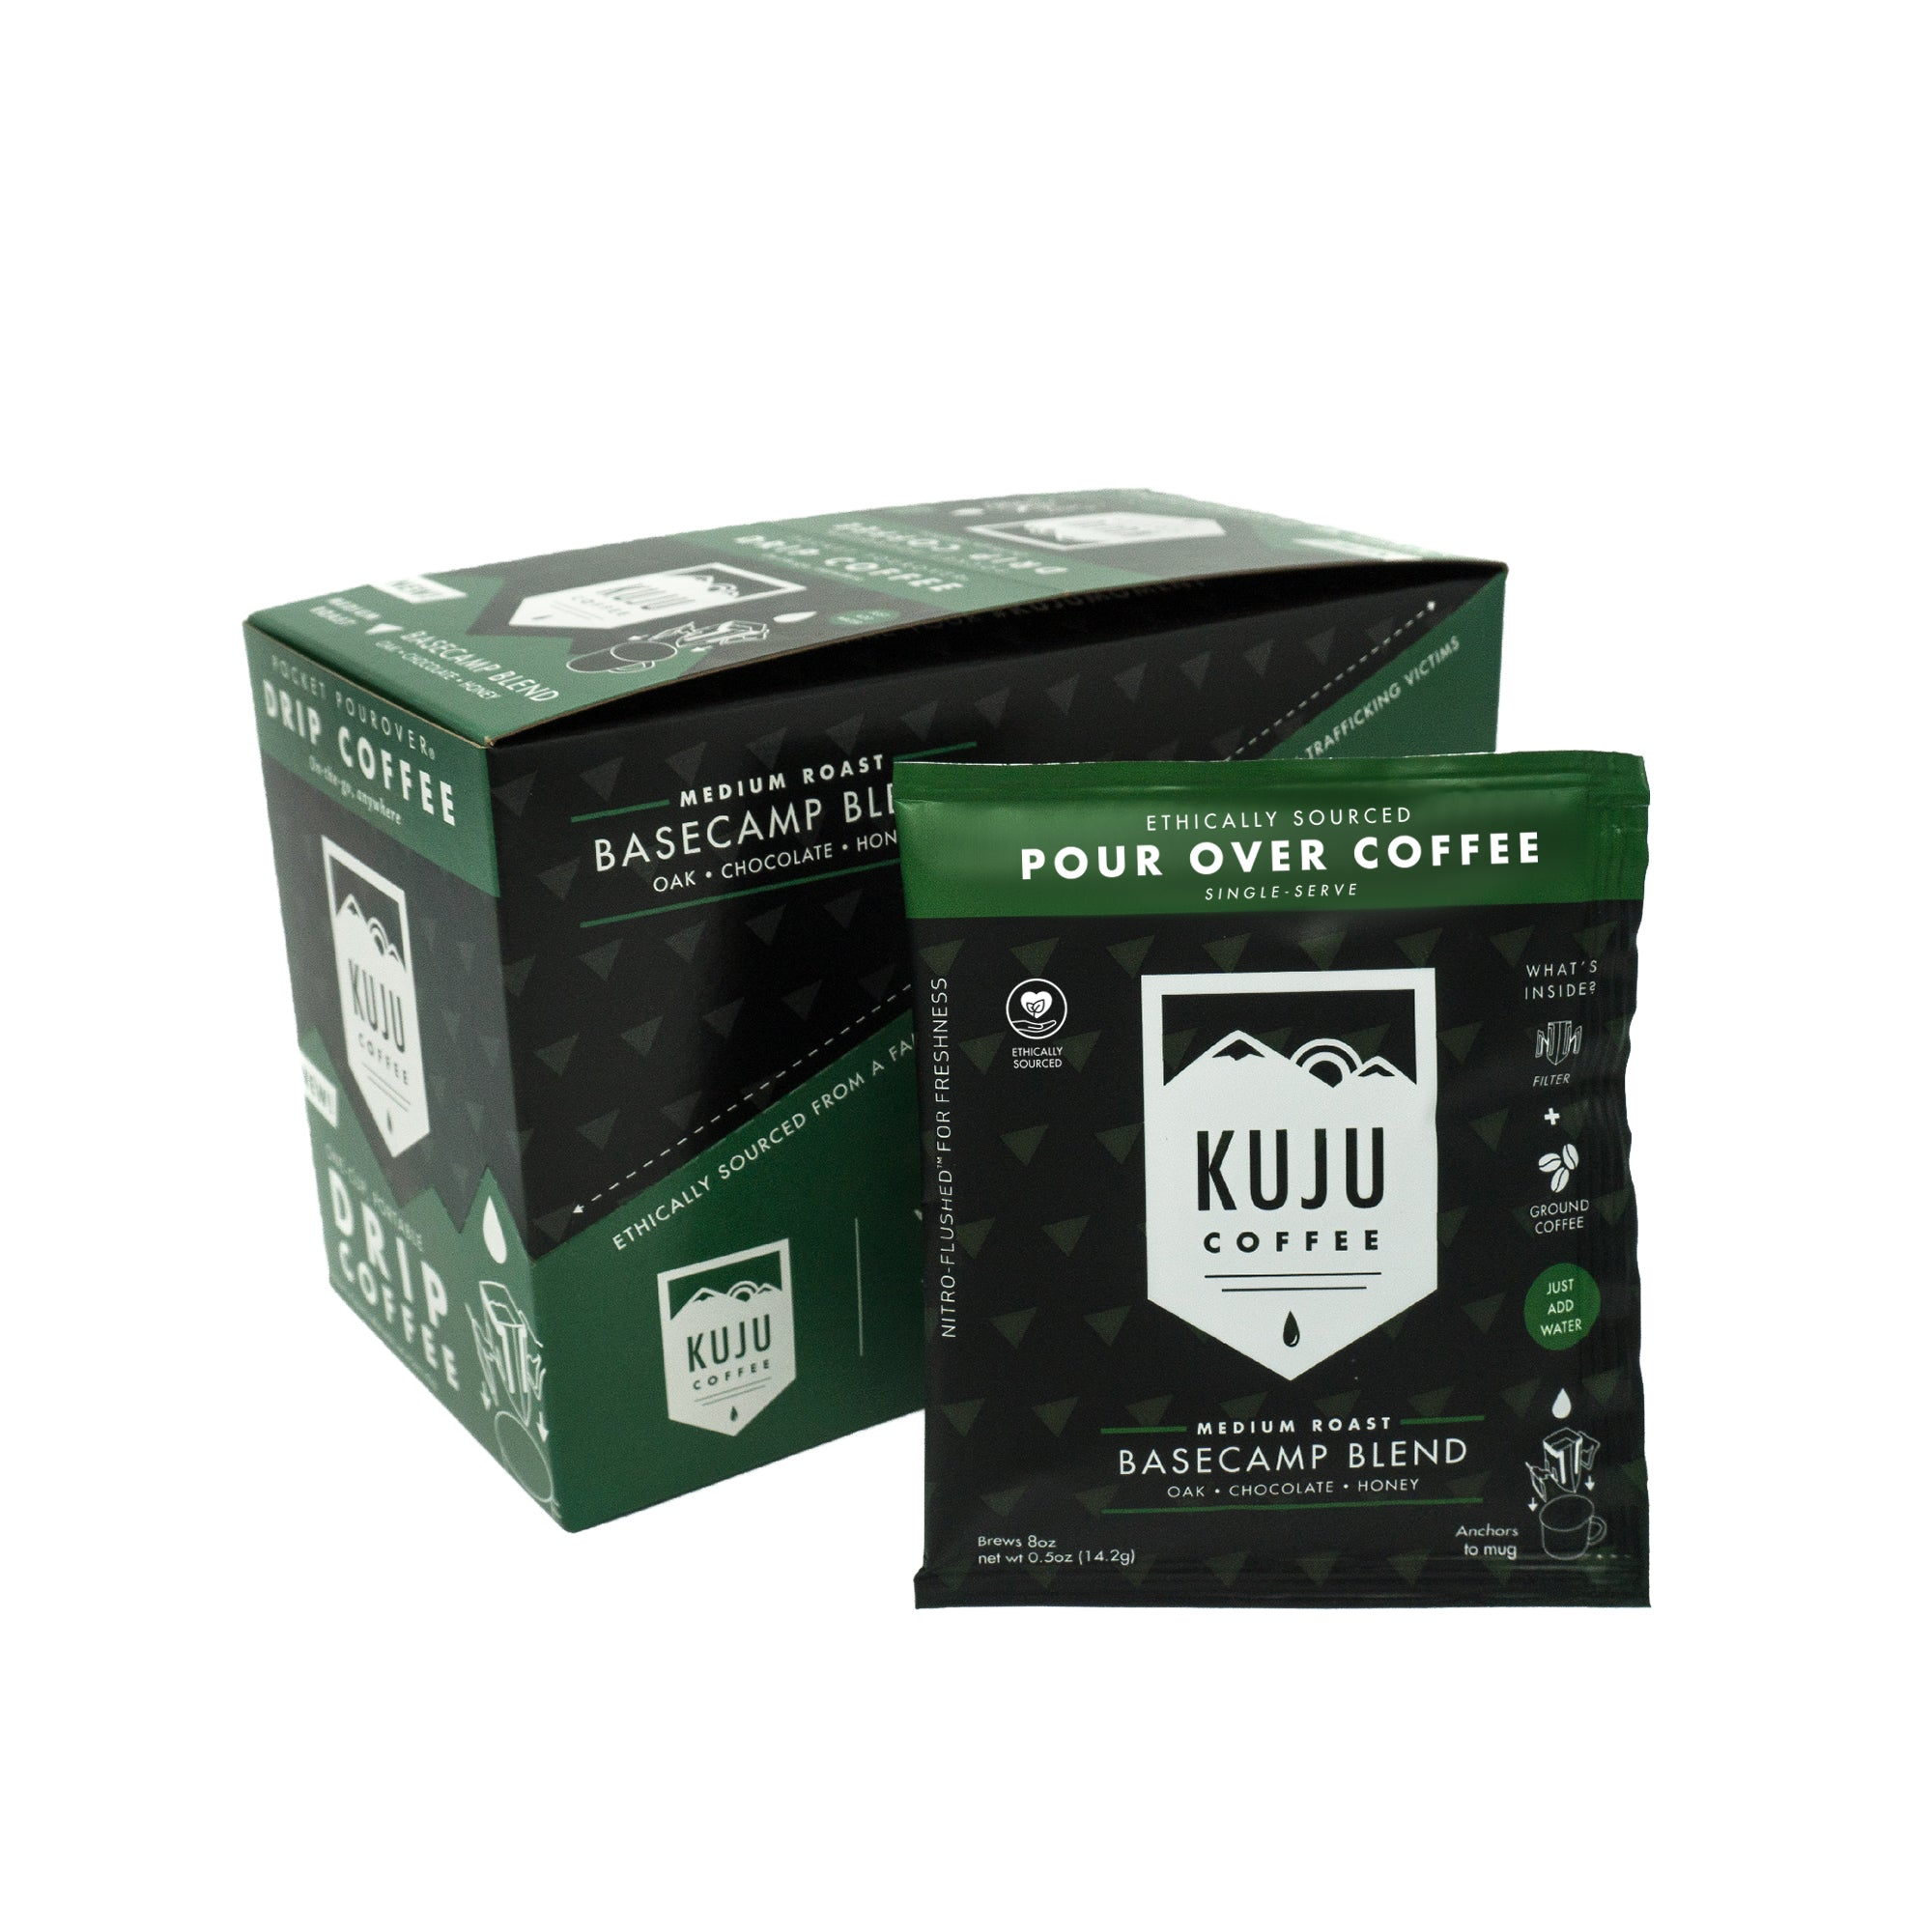 kuju coffee single serve portable disposable use pour over coffee basecamp blend medium roast